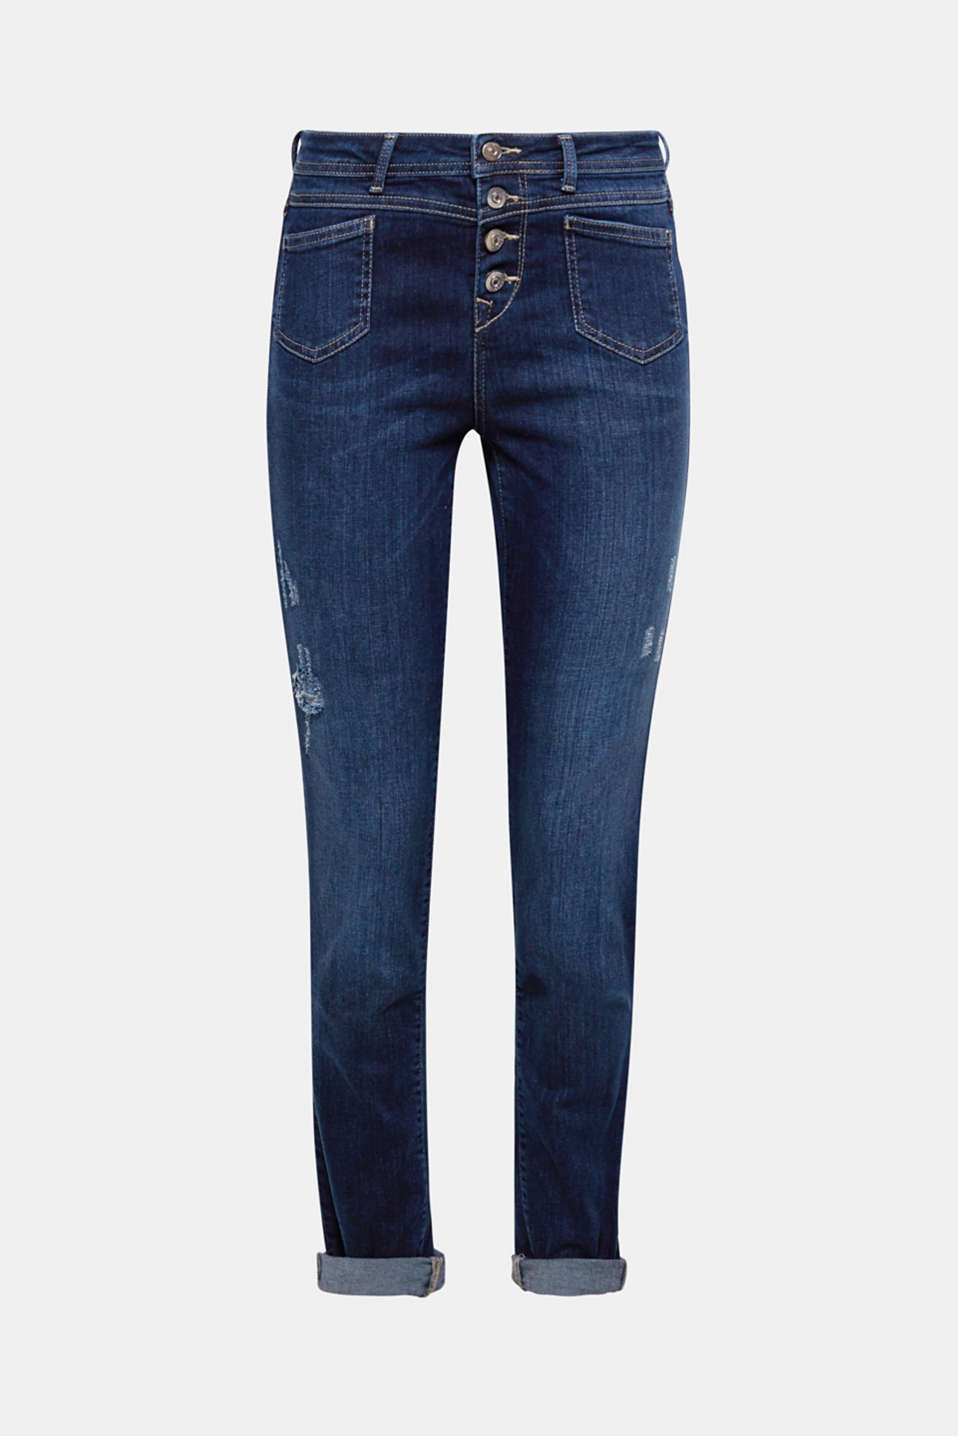 The destroyed finish and full-length button fly make these jeans extremely eye-catching.